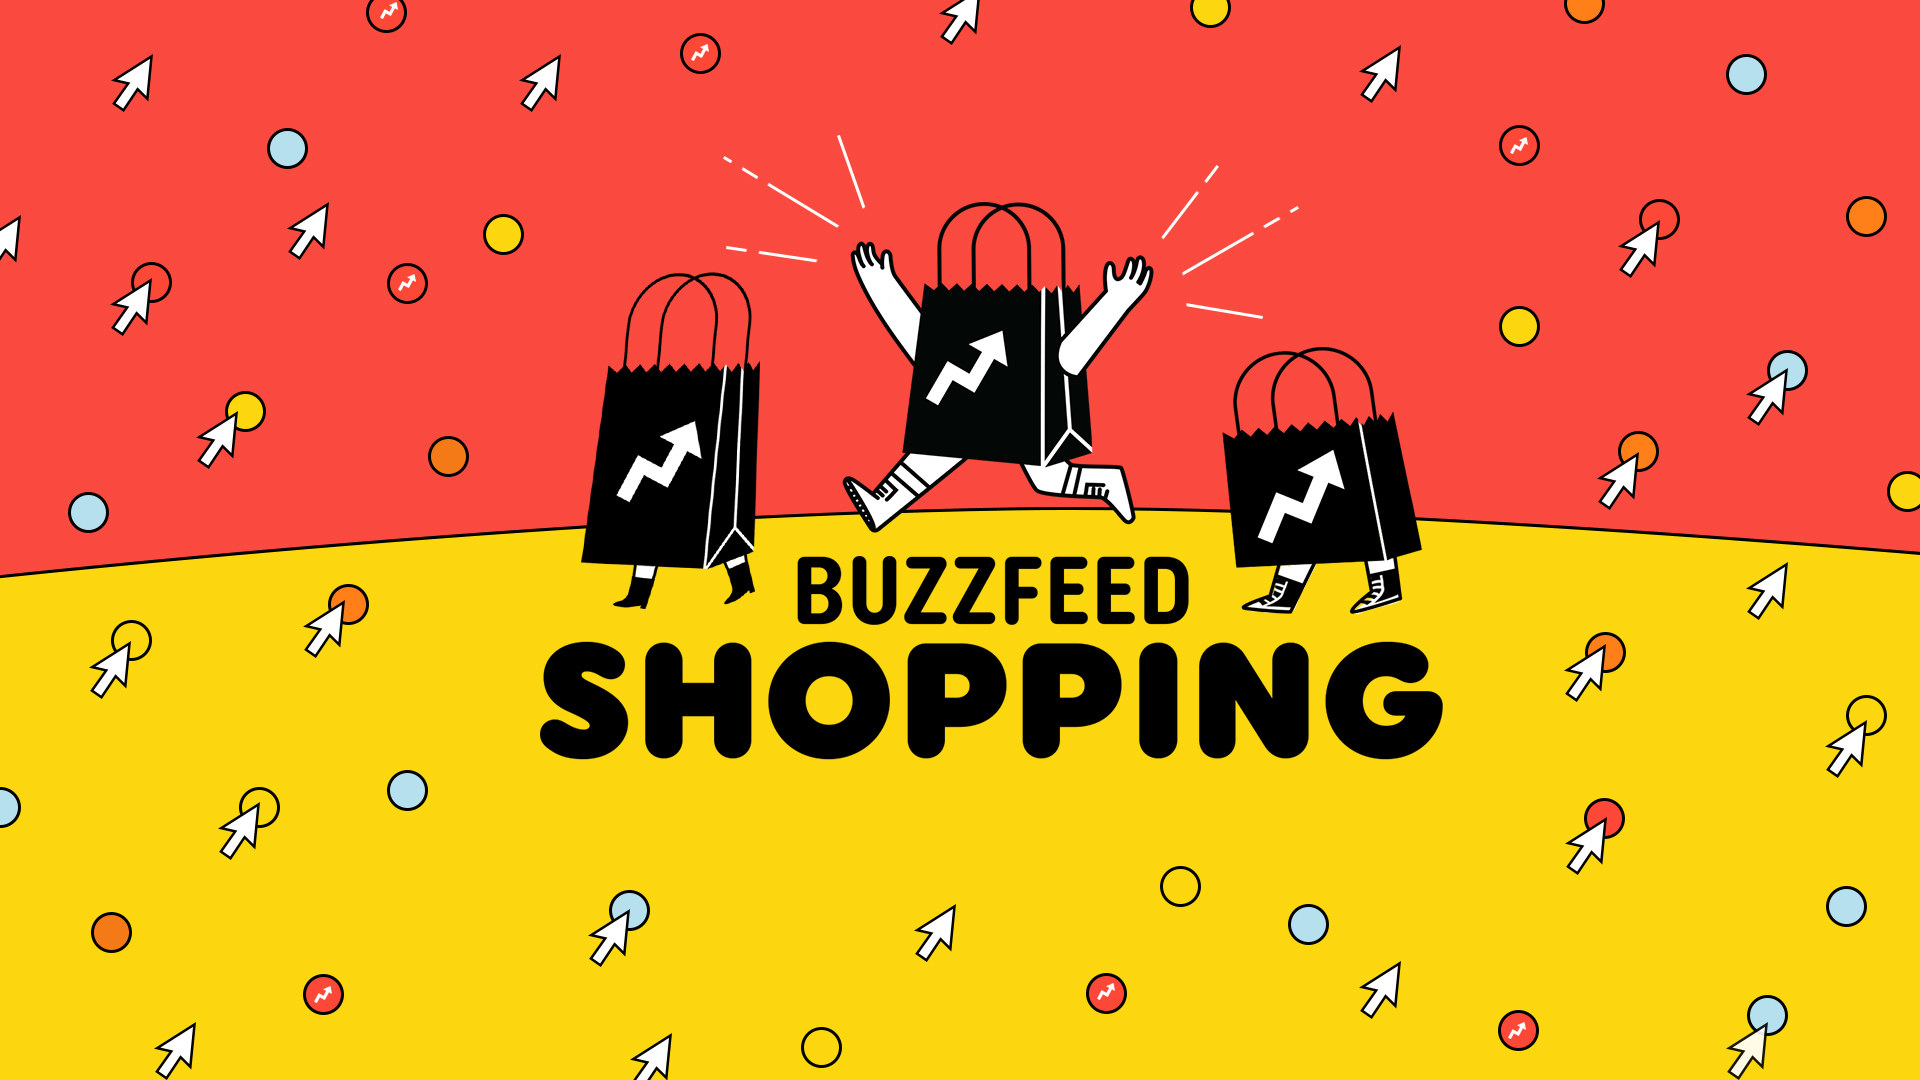 BuzzFeed Shopping logo with shopping bags running around